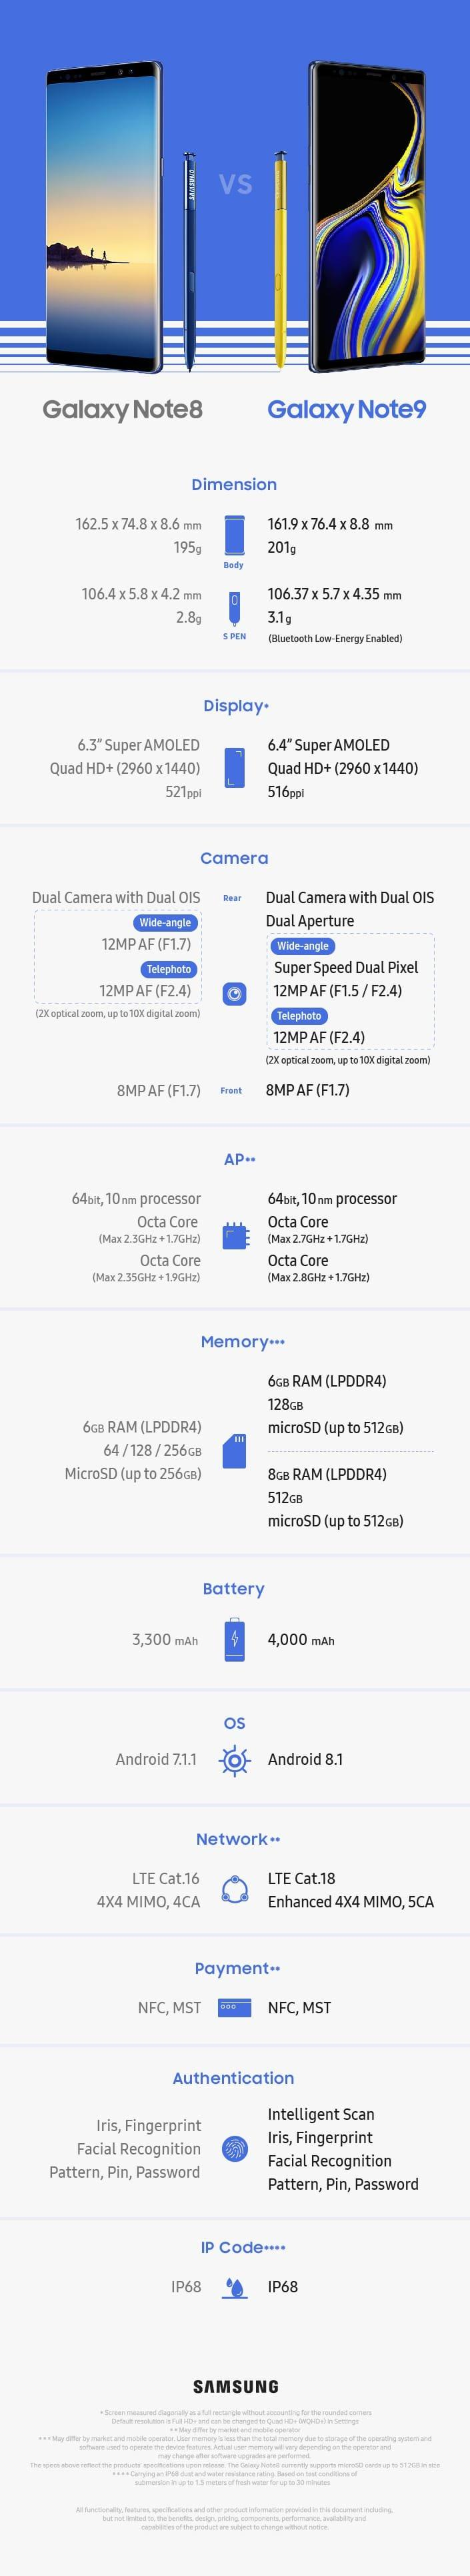 Comparing #Samsung #Note9 and #Samsung #Note8 #Infographic